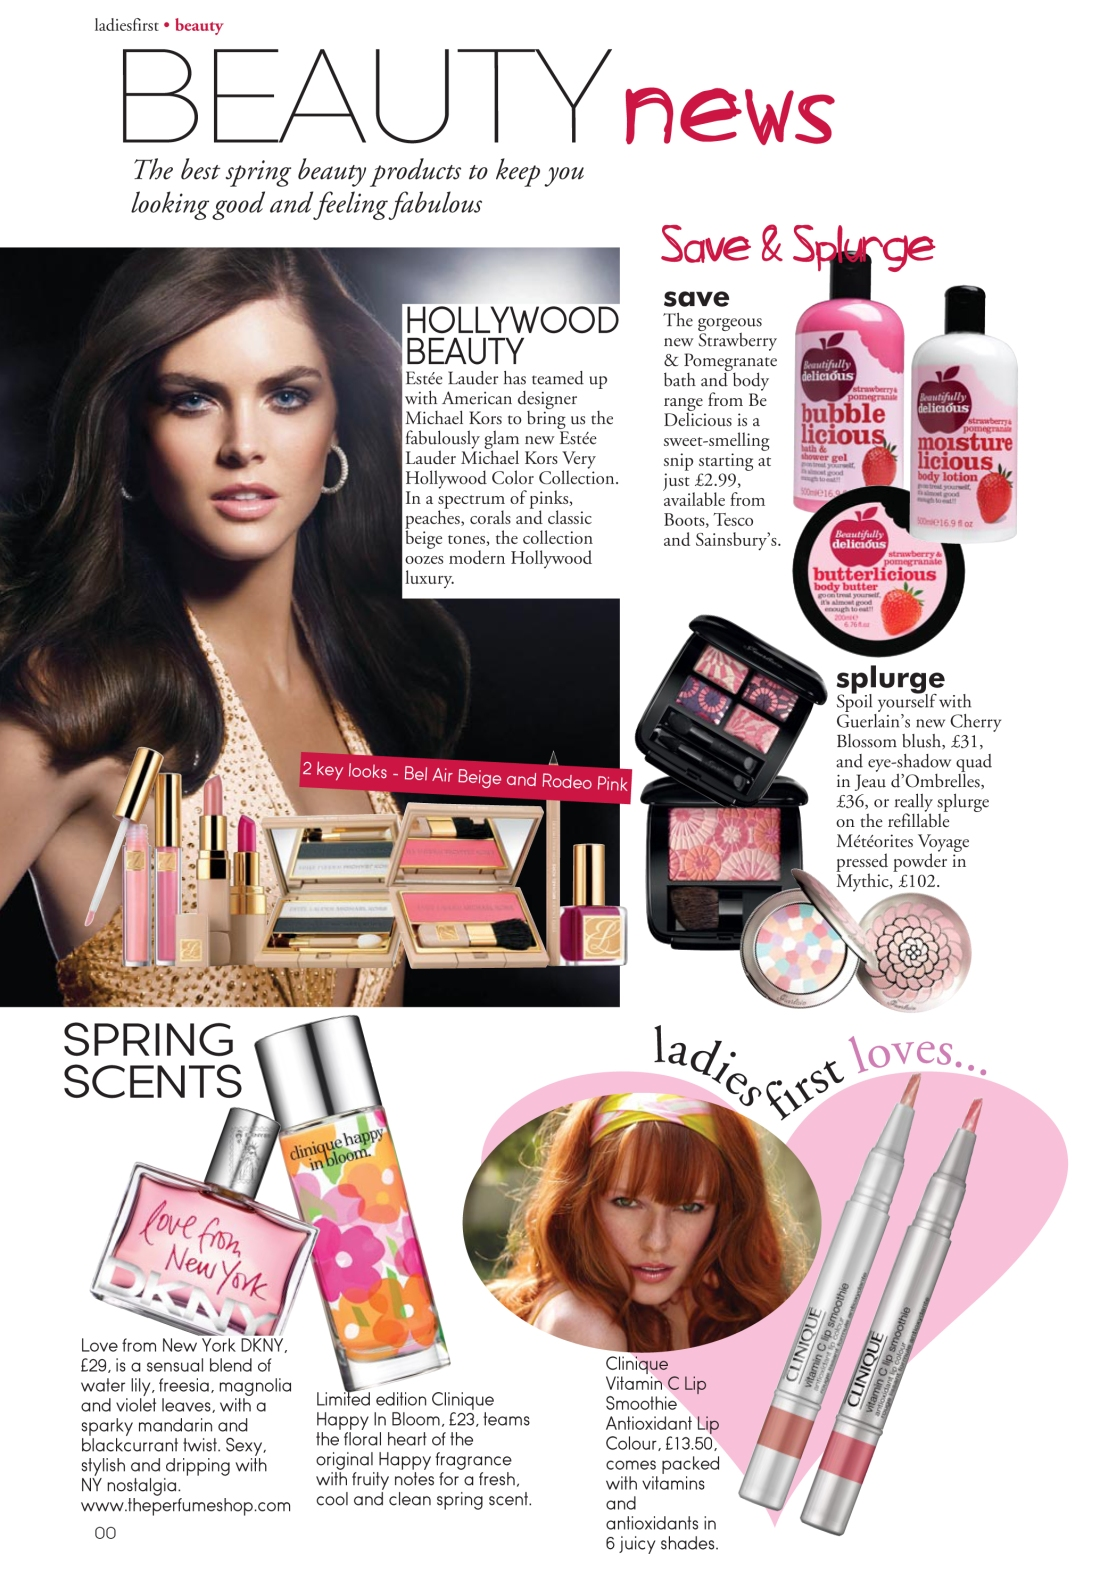 Beauty news spread for Ladies First Spring 2010 issue - page 1 - Amy Lewis